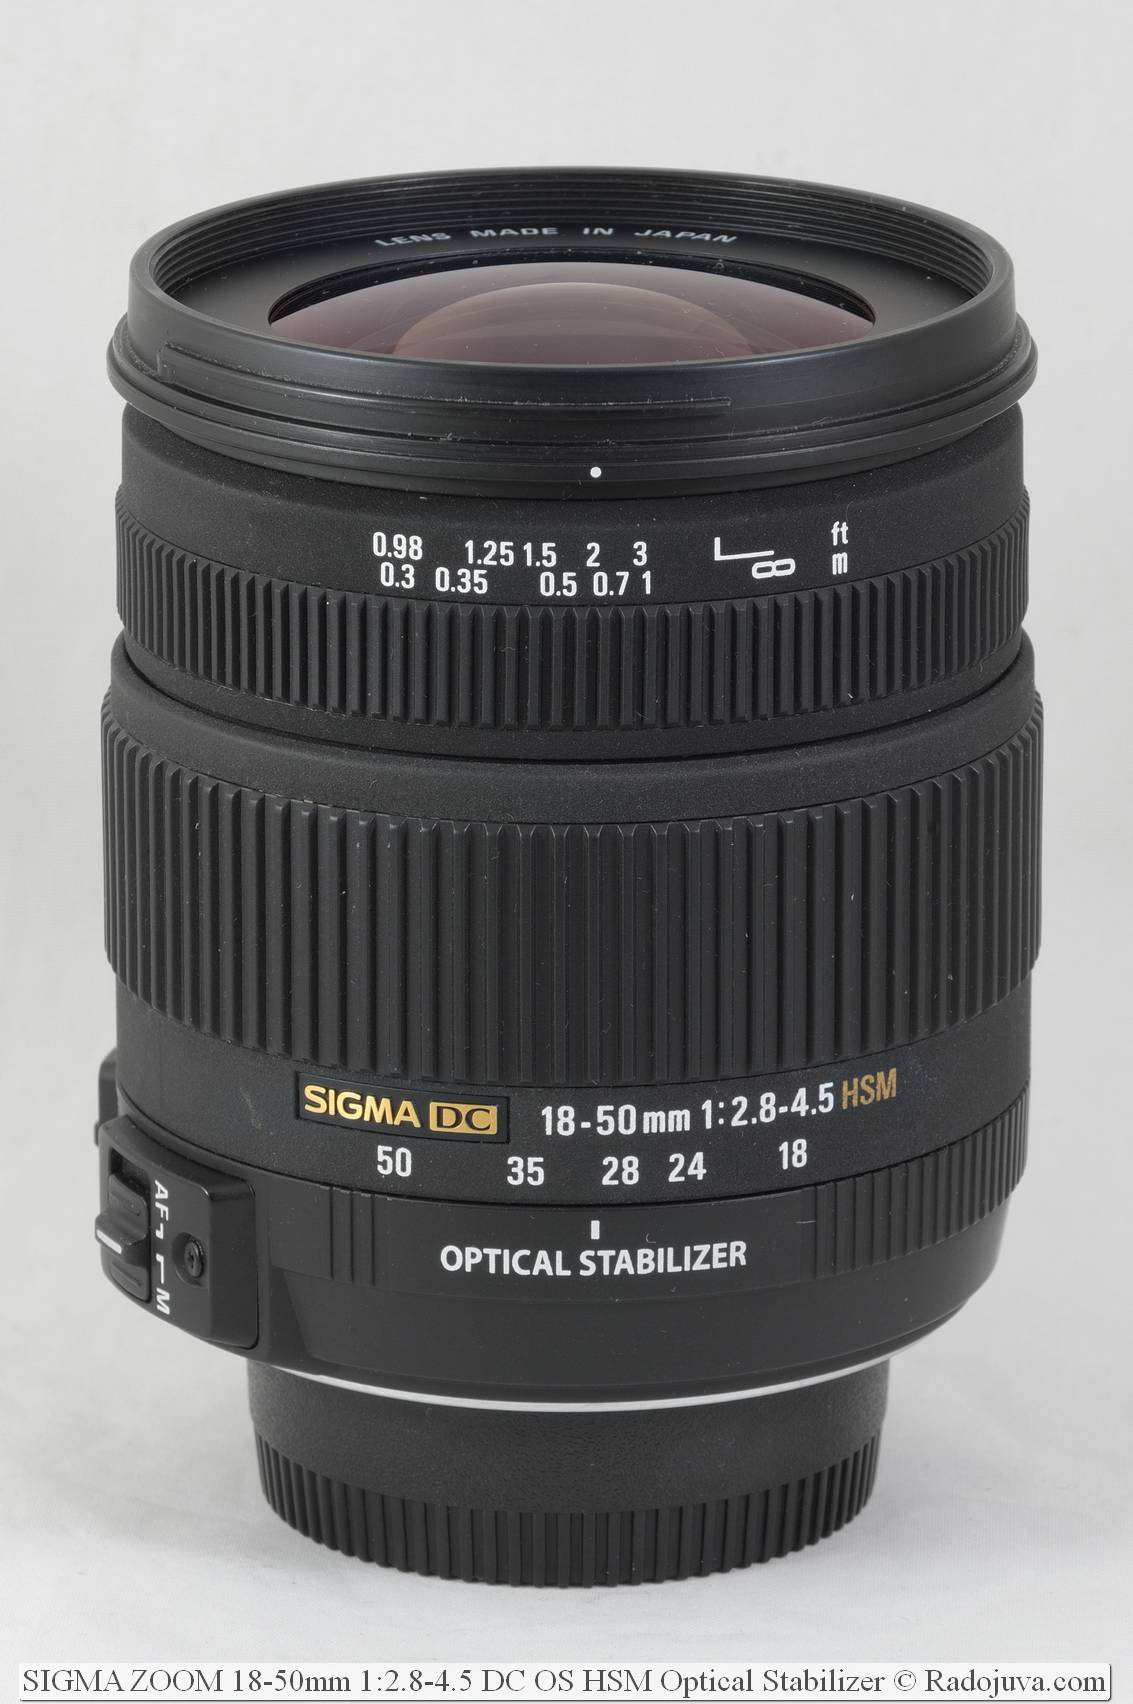 SIGMA ZOOM 18-50mm 1:2.8-4.5 DC OS HSM Optical Stabilizer